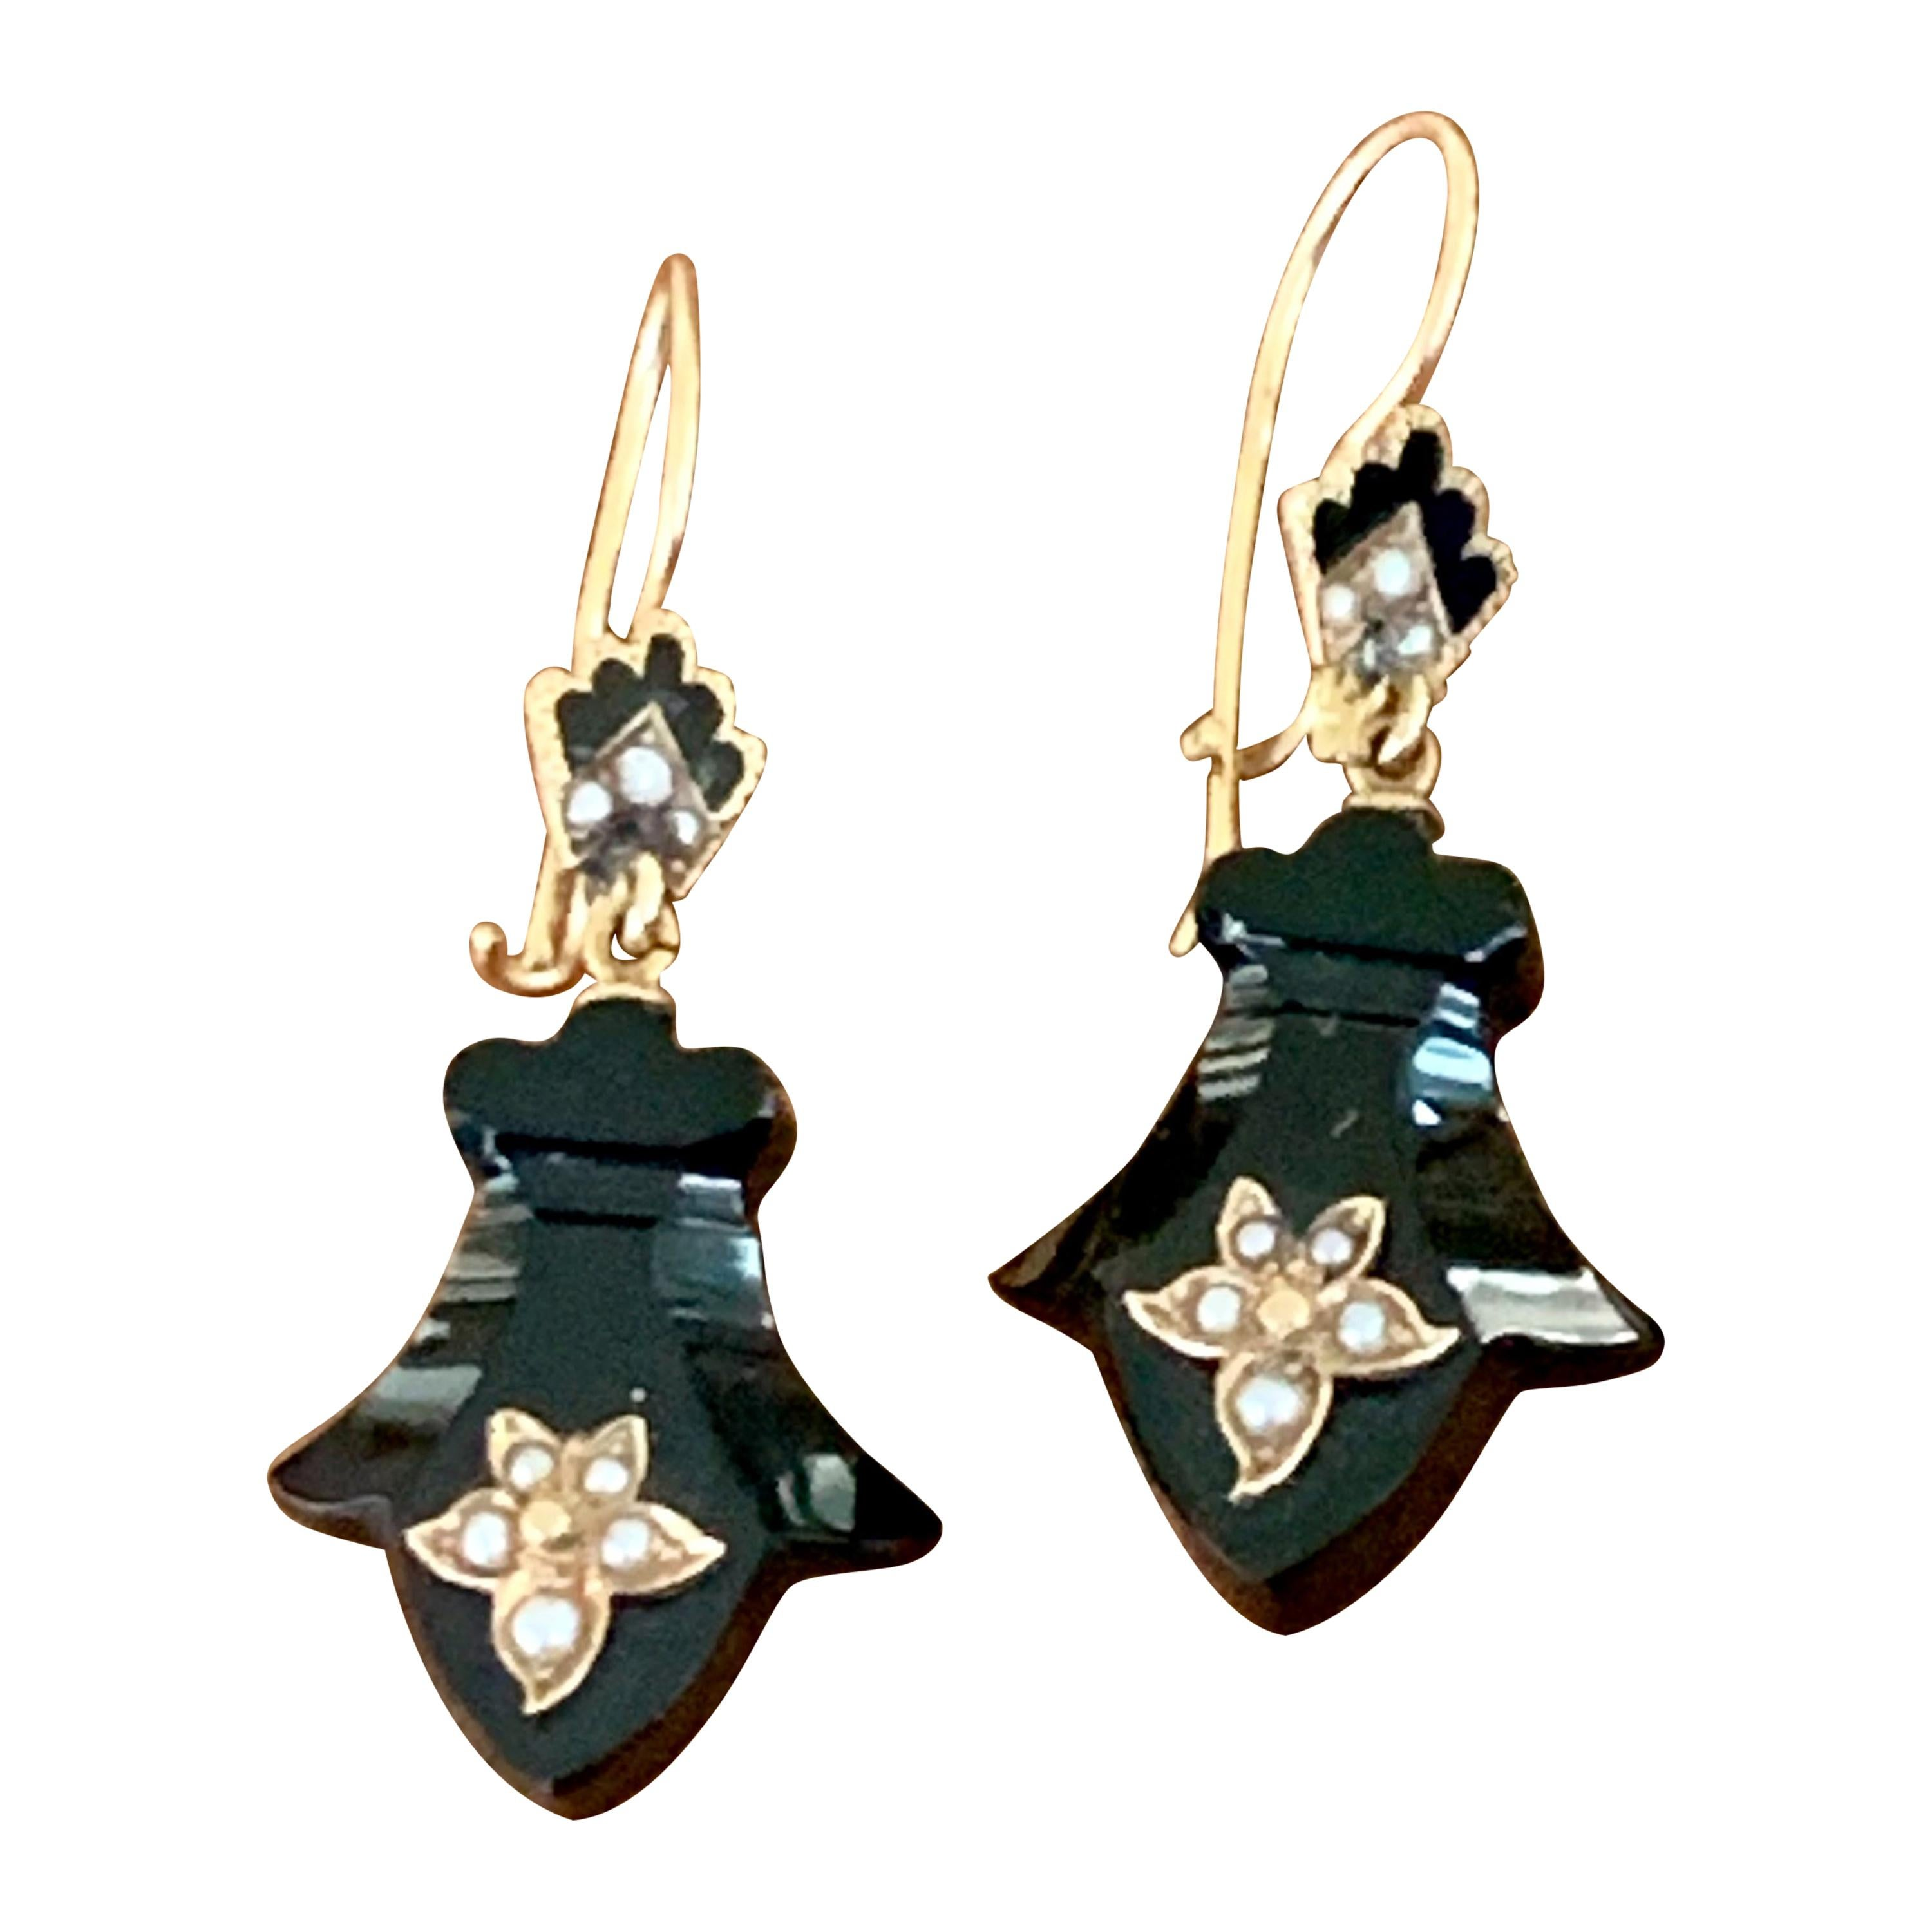 Vintage 1910's Black Onyx and Seed Pearl 14 Karat Yellow Gold Dangle Earrings